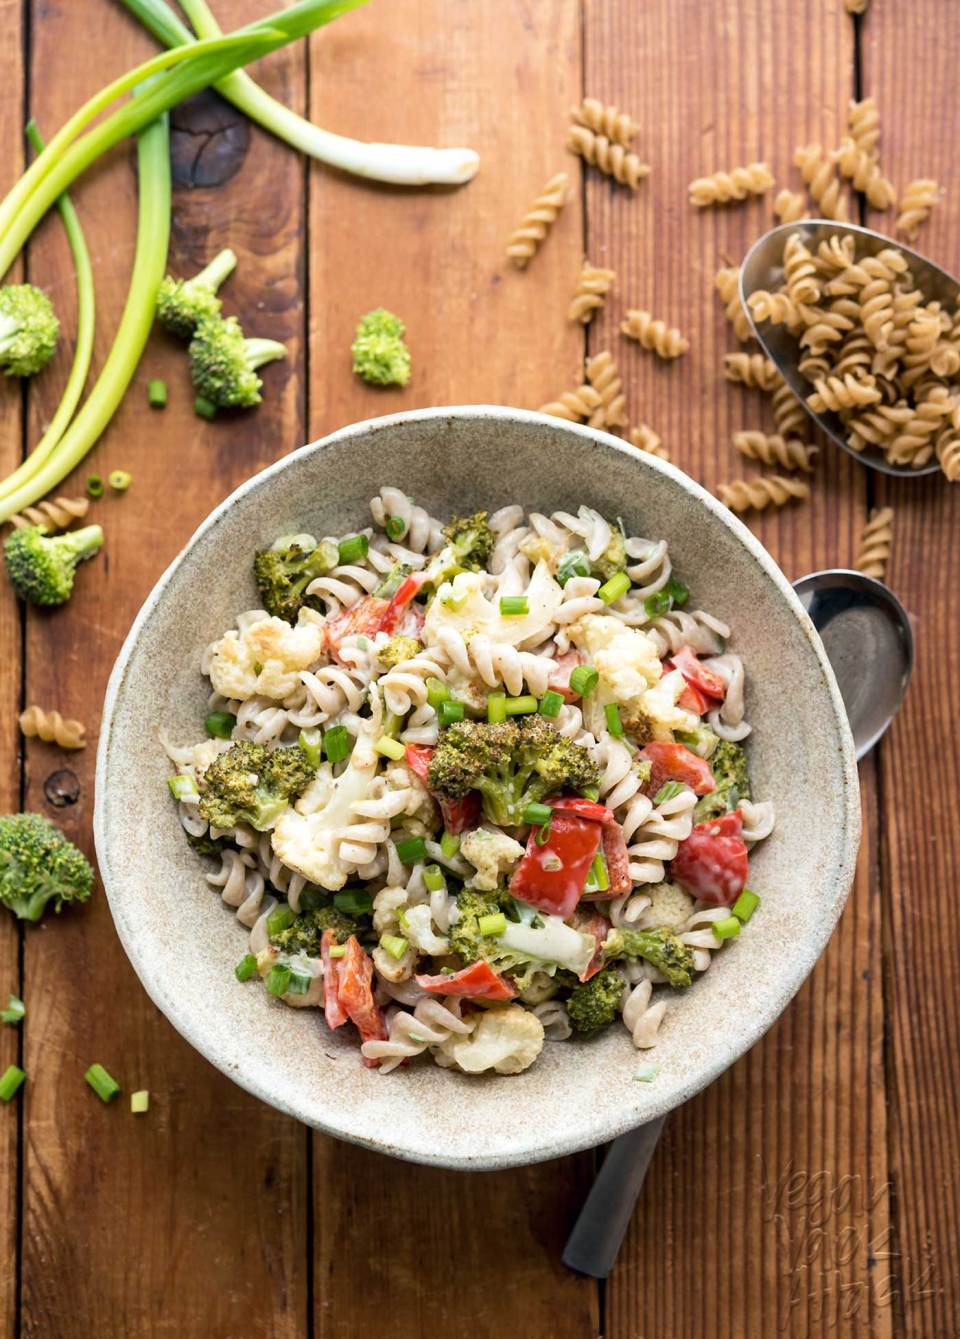 This Roasted Broccoli Pasta Salad is perfect for bringing to gatherings! Full of flavor, and very allergy-friendly. #gogoquinoa #glutenfree #vegan #soyfree